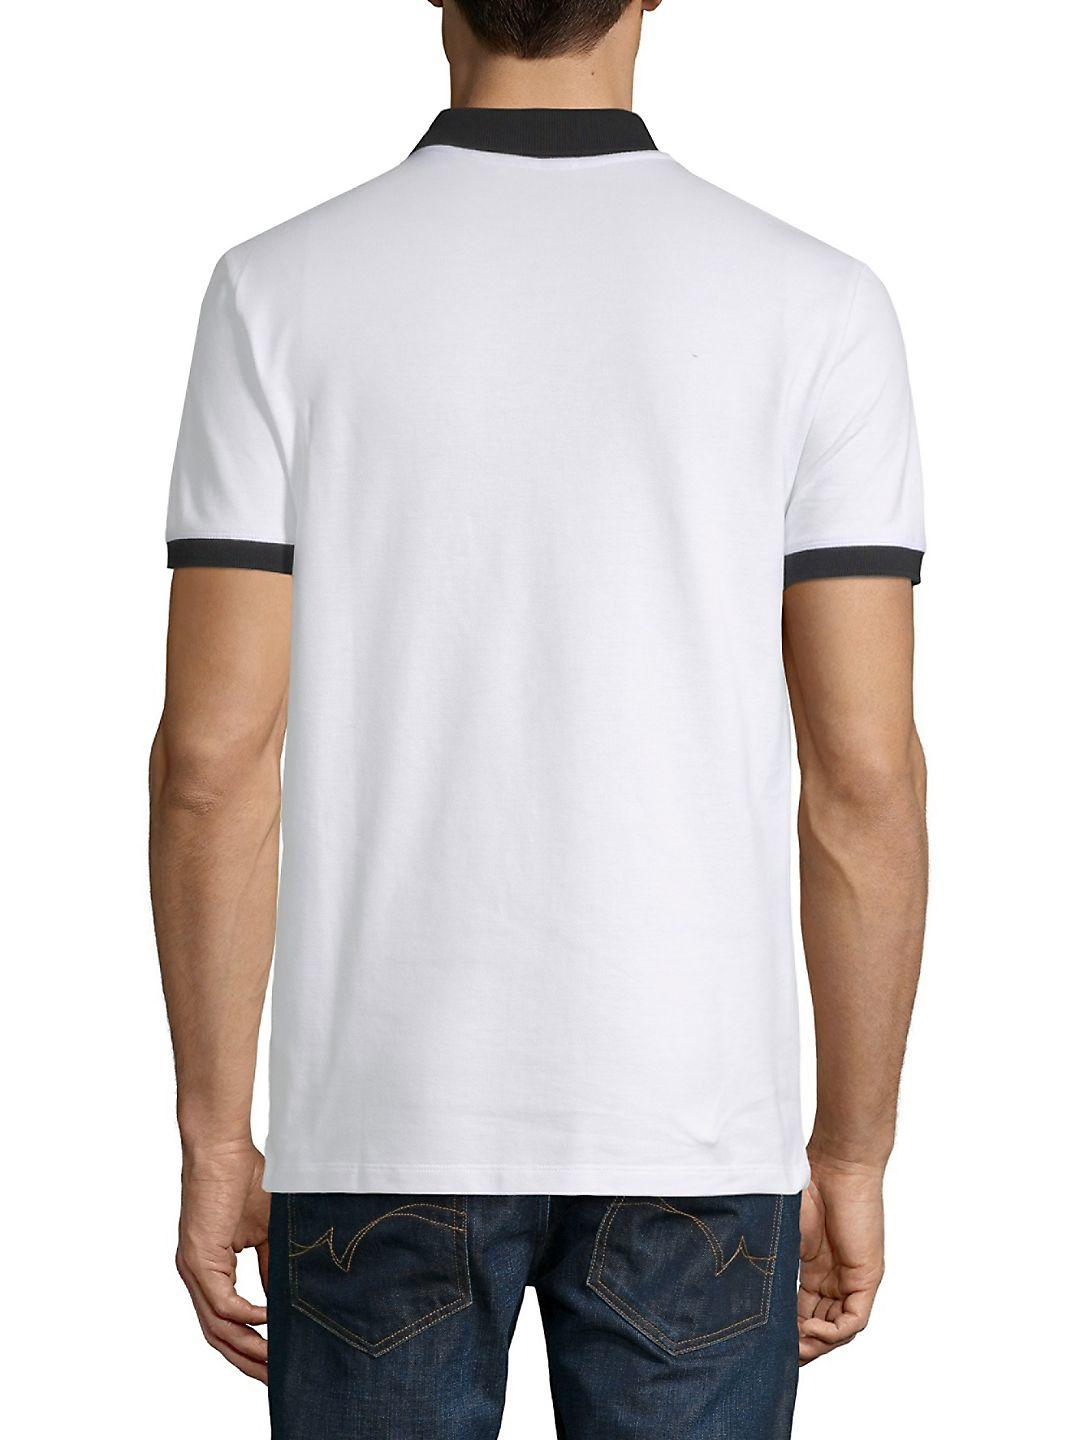 Versace Cotton Contrast Polo Shirt in Blue Print (White) for Men